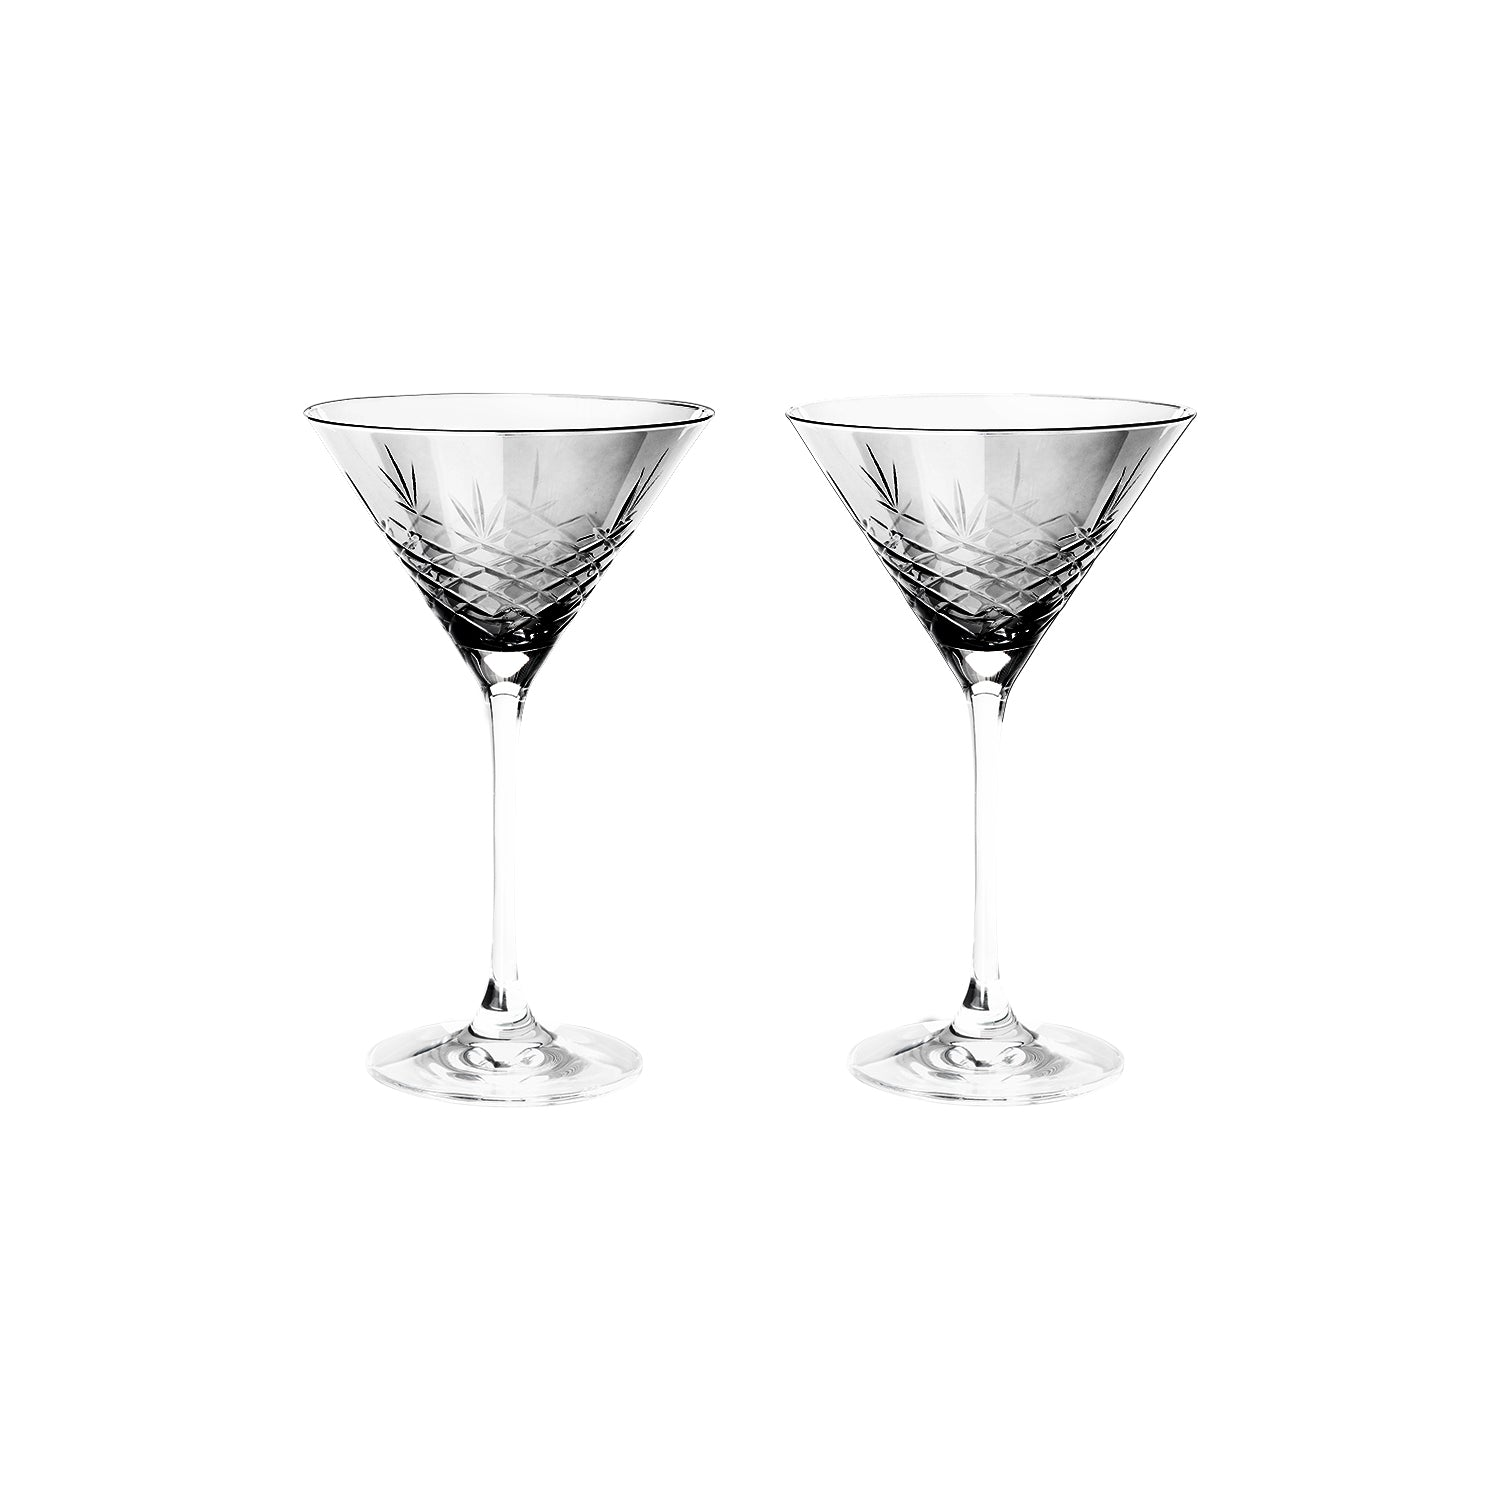 Crispy Cocktail Dark // Smoked - 2 Pieces